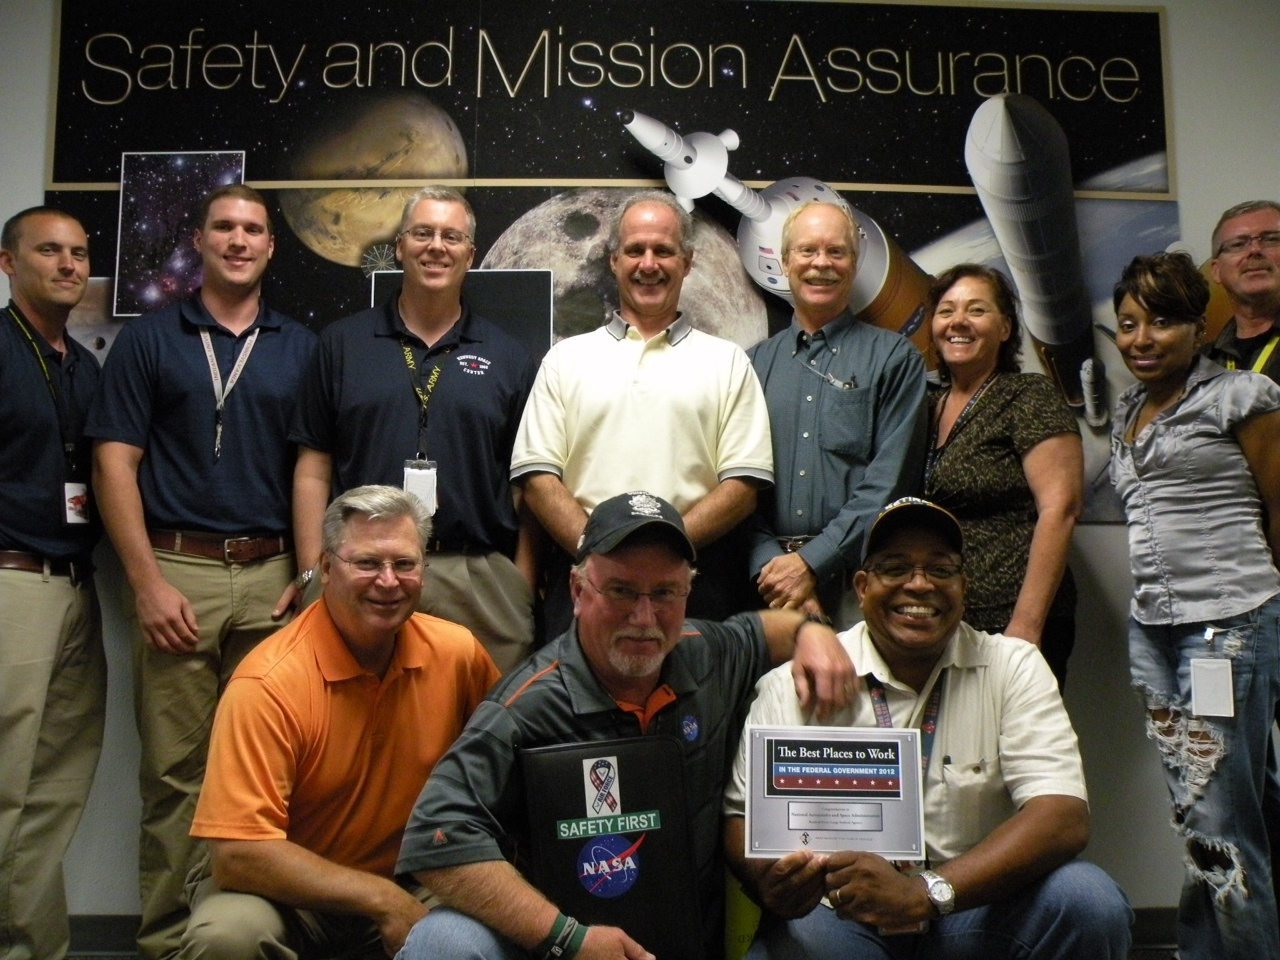 KSC safety and mission assurance